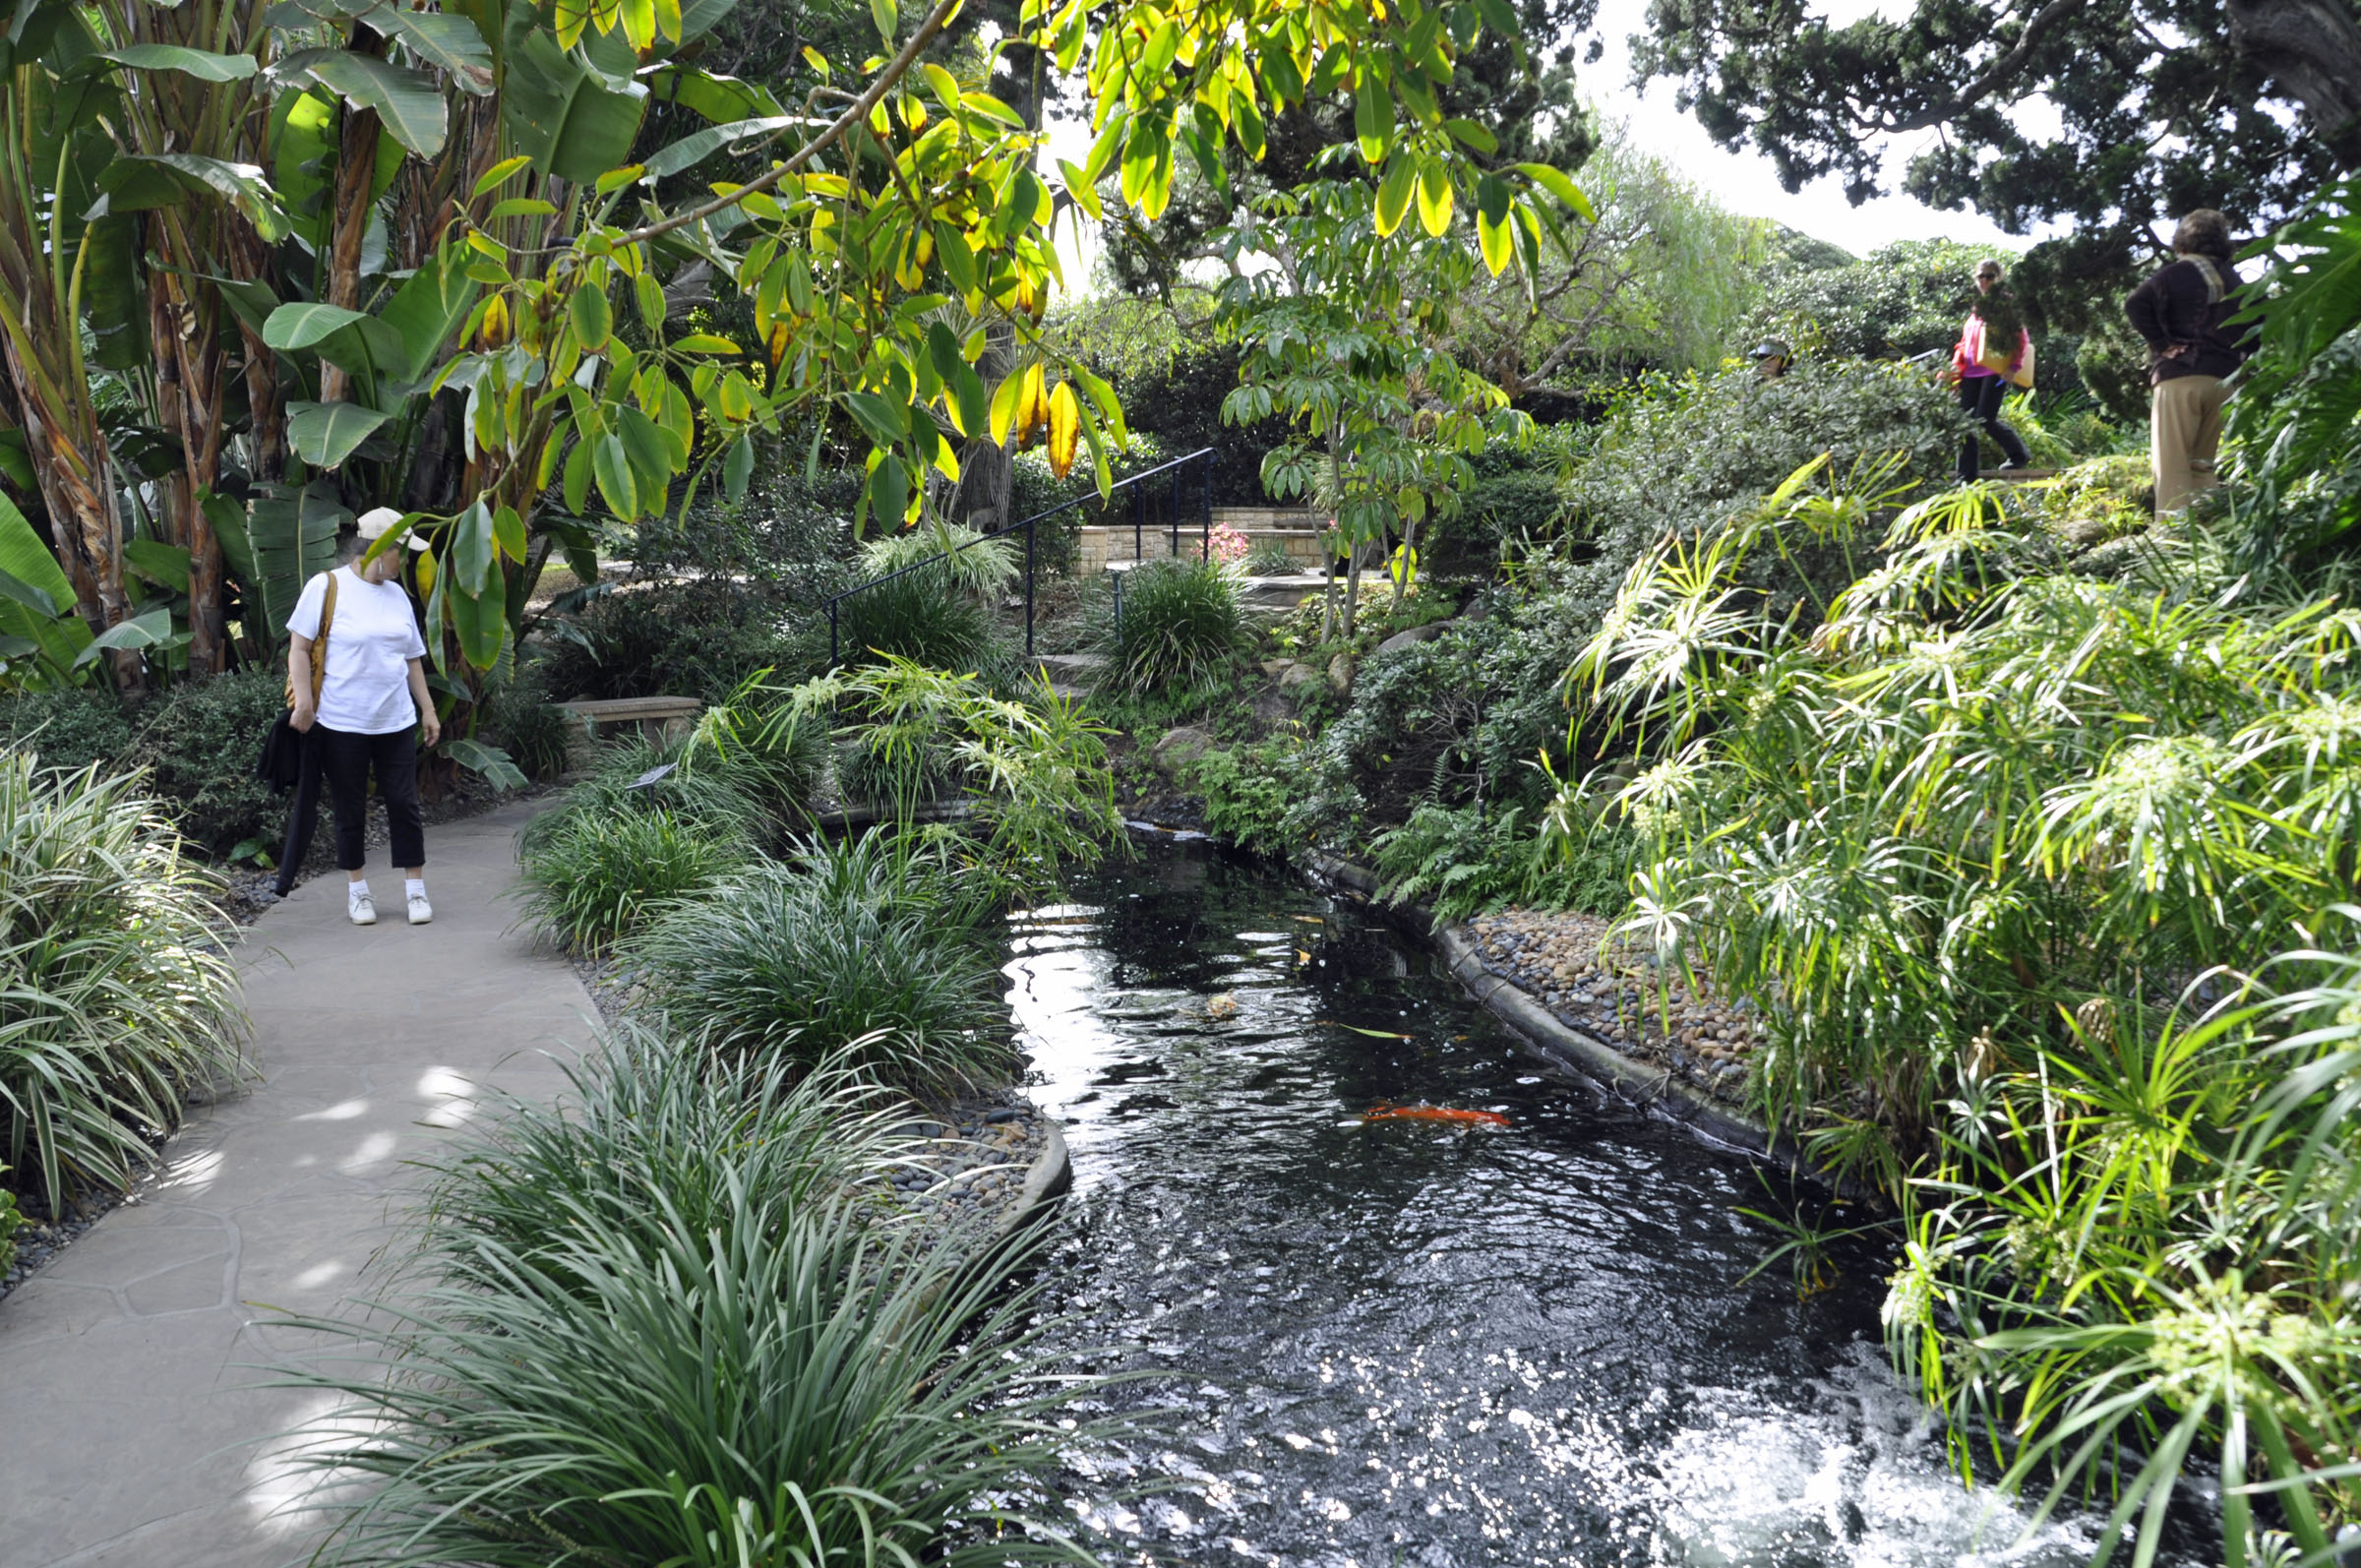 Self Realization Fellowship Meditation Gardens Encinitas